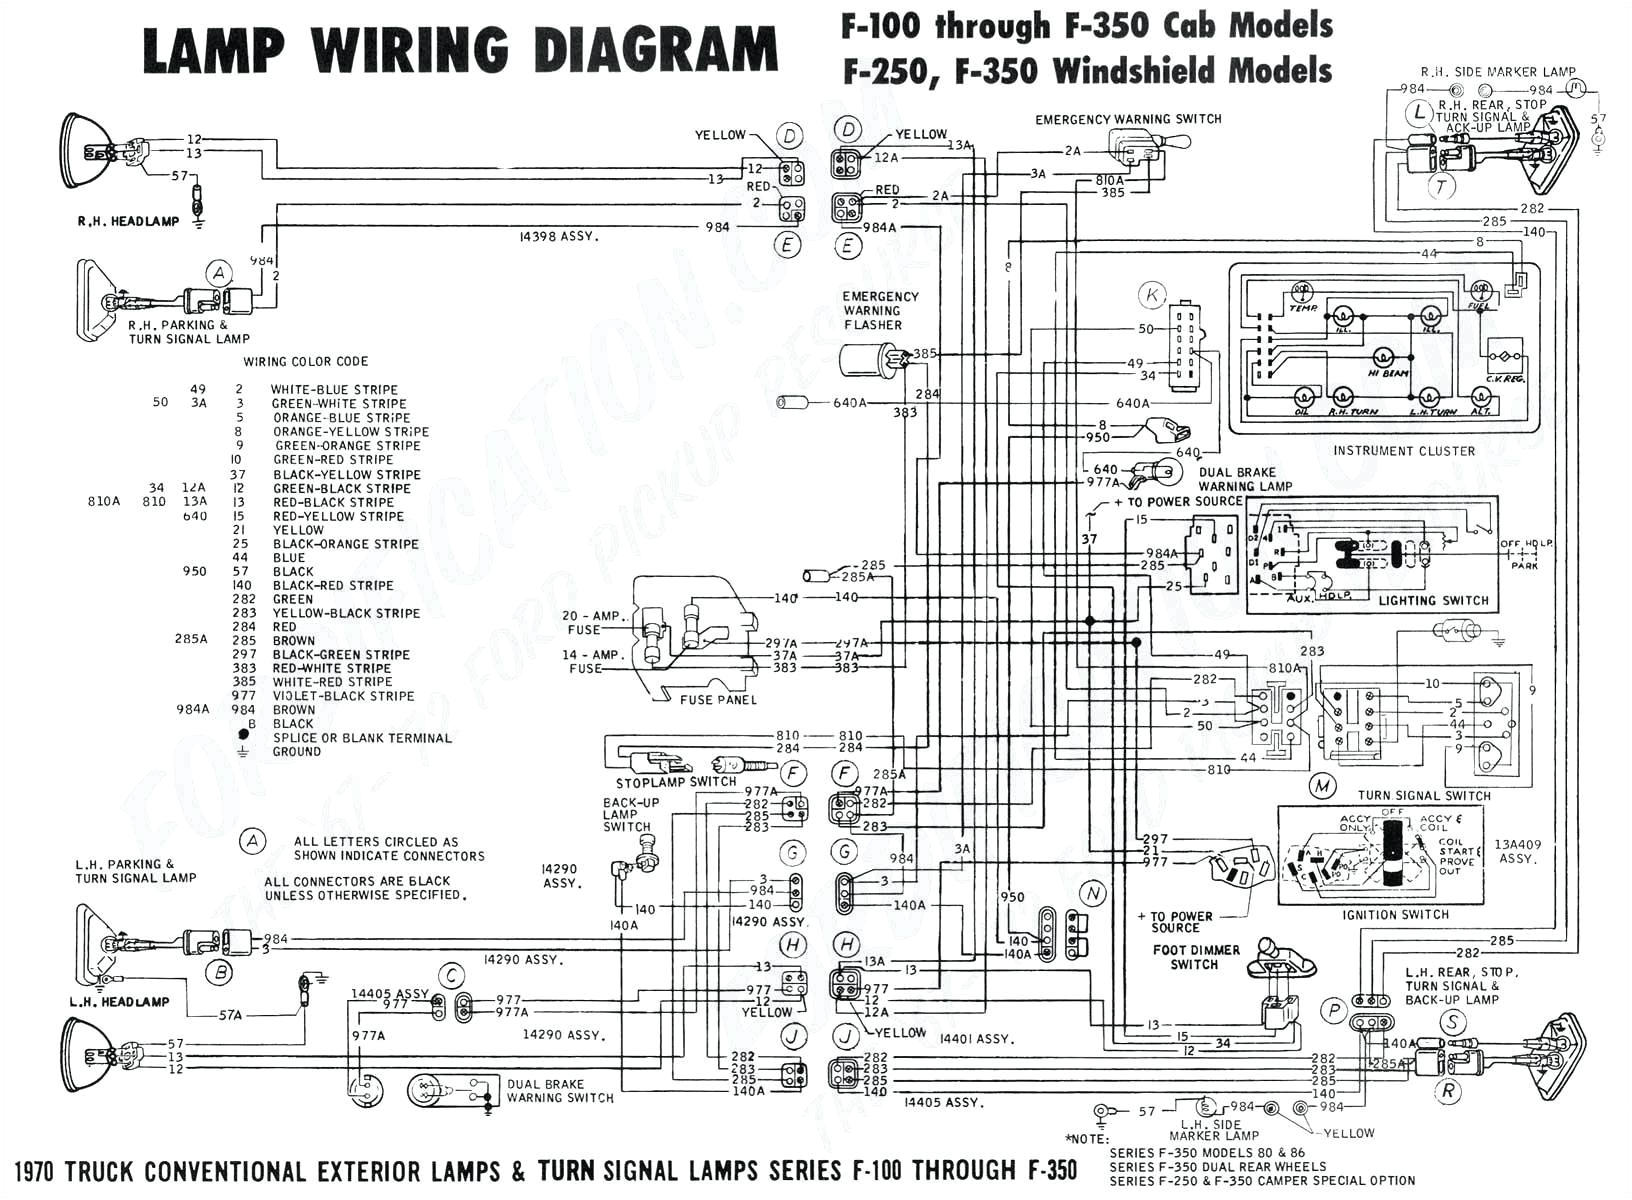 fuse box diagram for a 1990 chevy lumina besides 1994 chevy 1500 wiring diagram i tried up the switch and